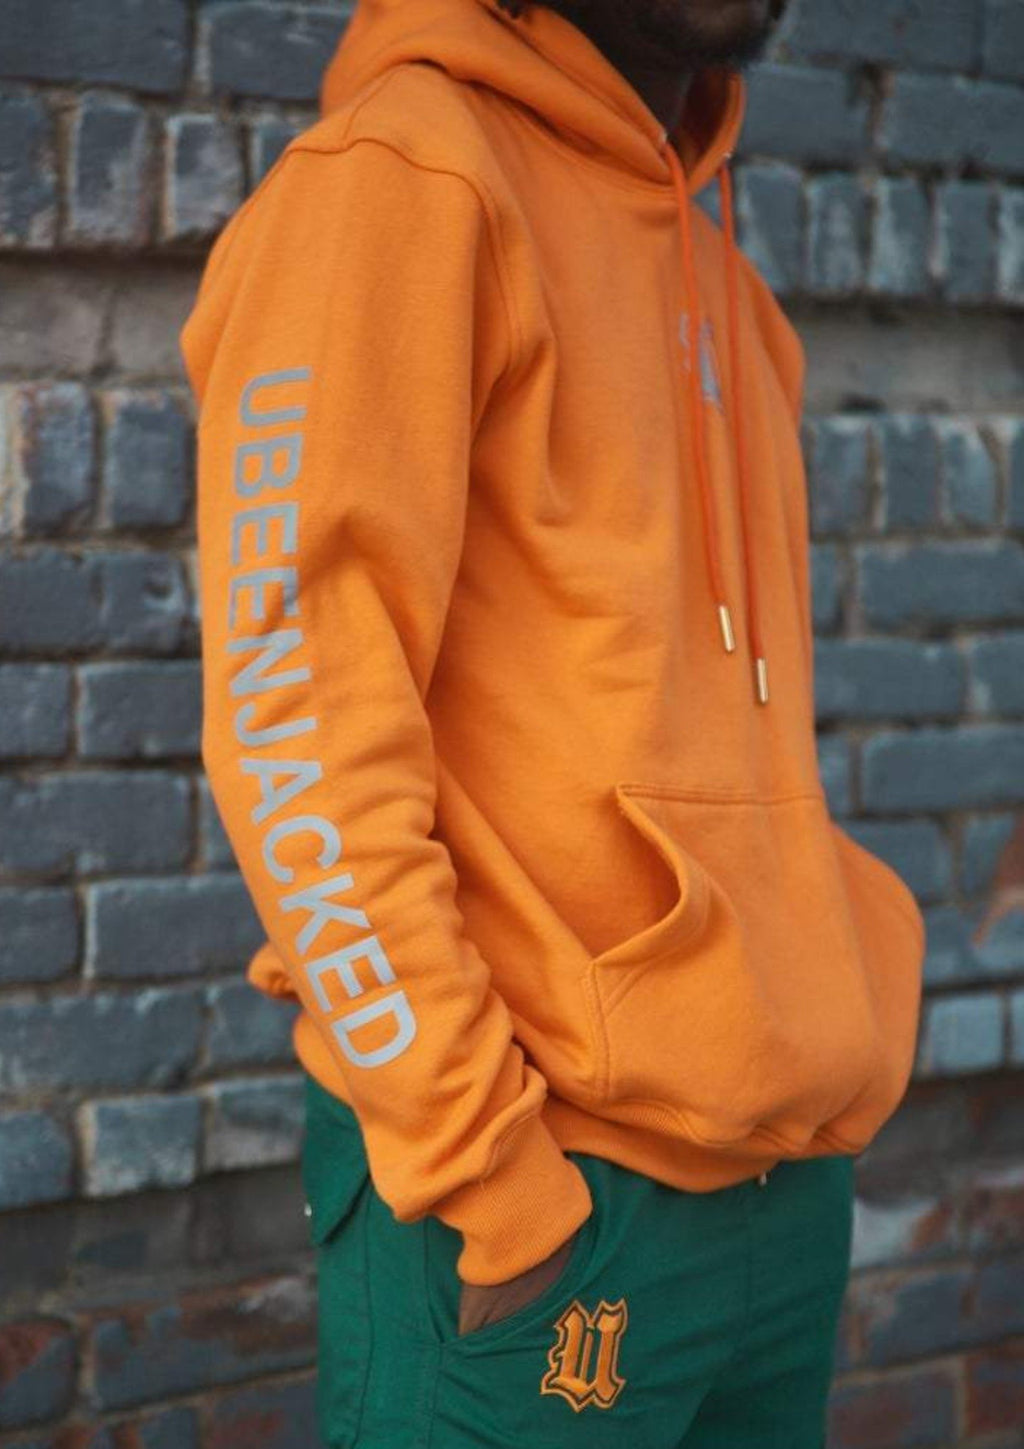 Side View Orange UBJ hoodie with reflective print on the arm